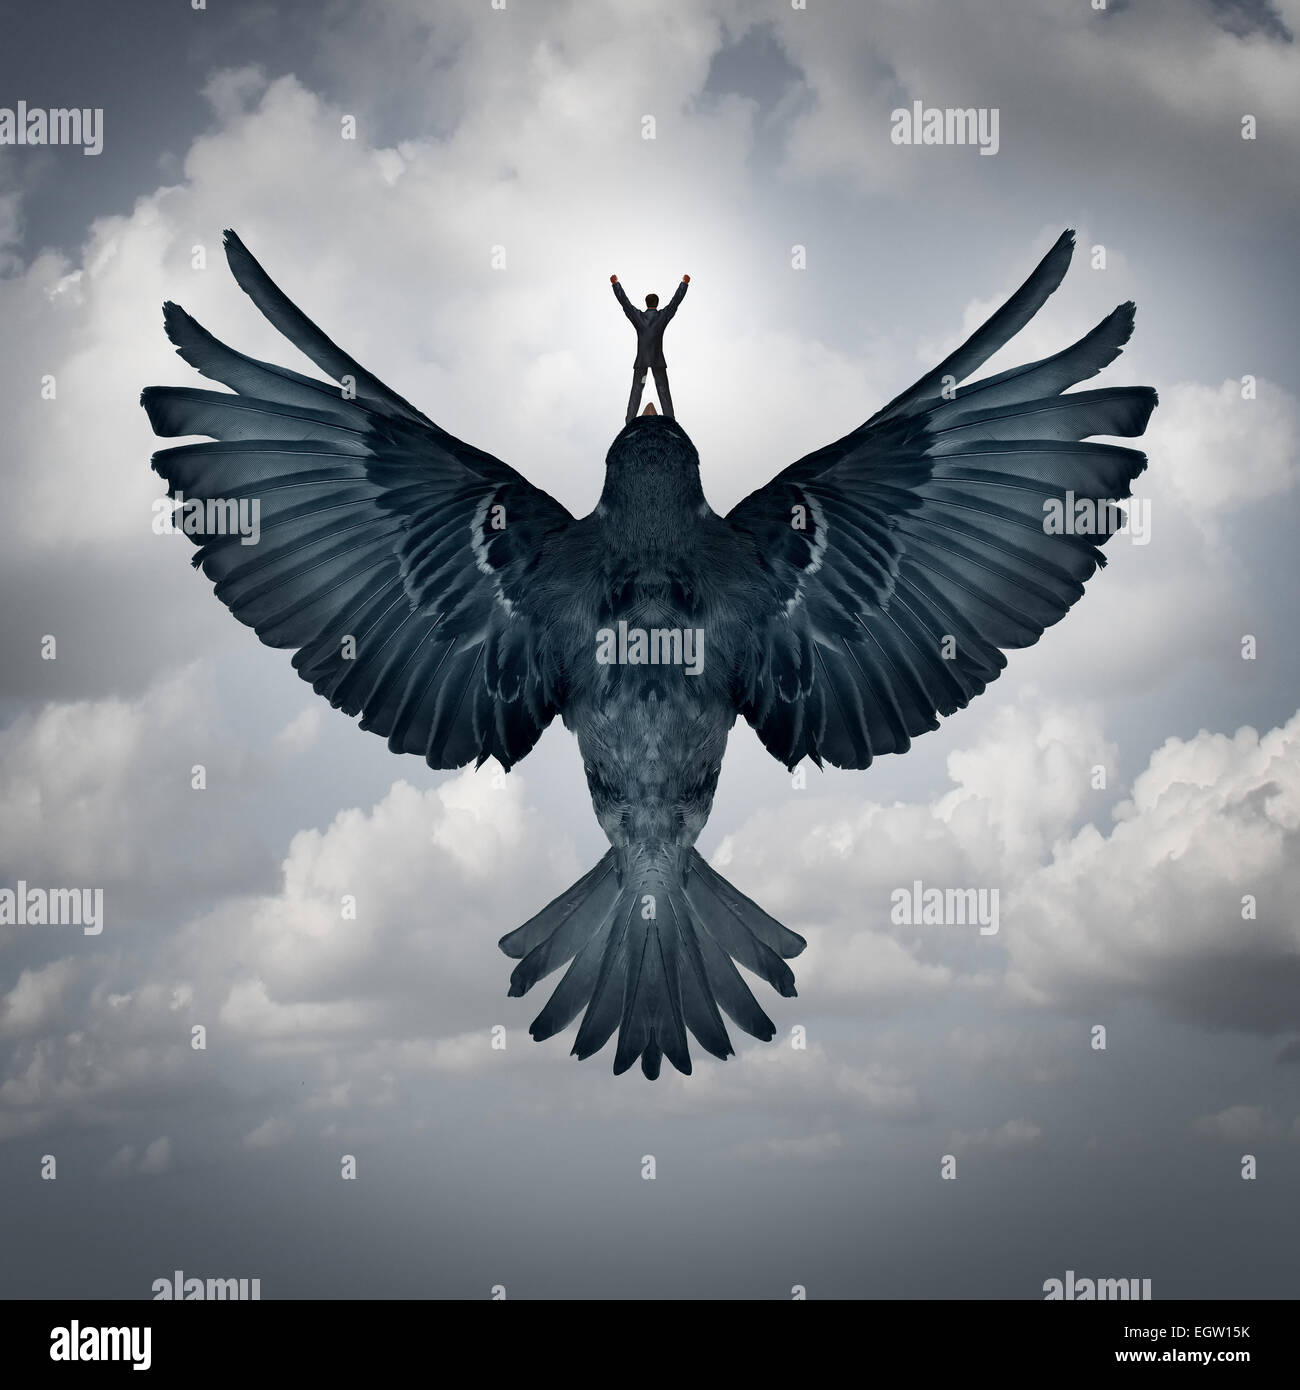 Success freedom business concept as a man riding an open wing bird flying upward as a symbol for reaching career - Stock Image